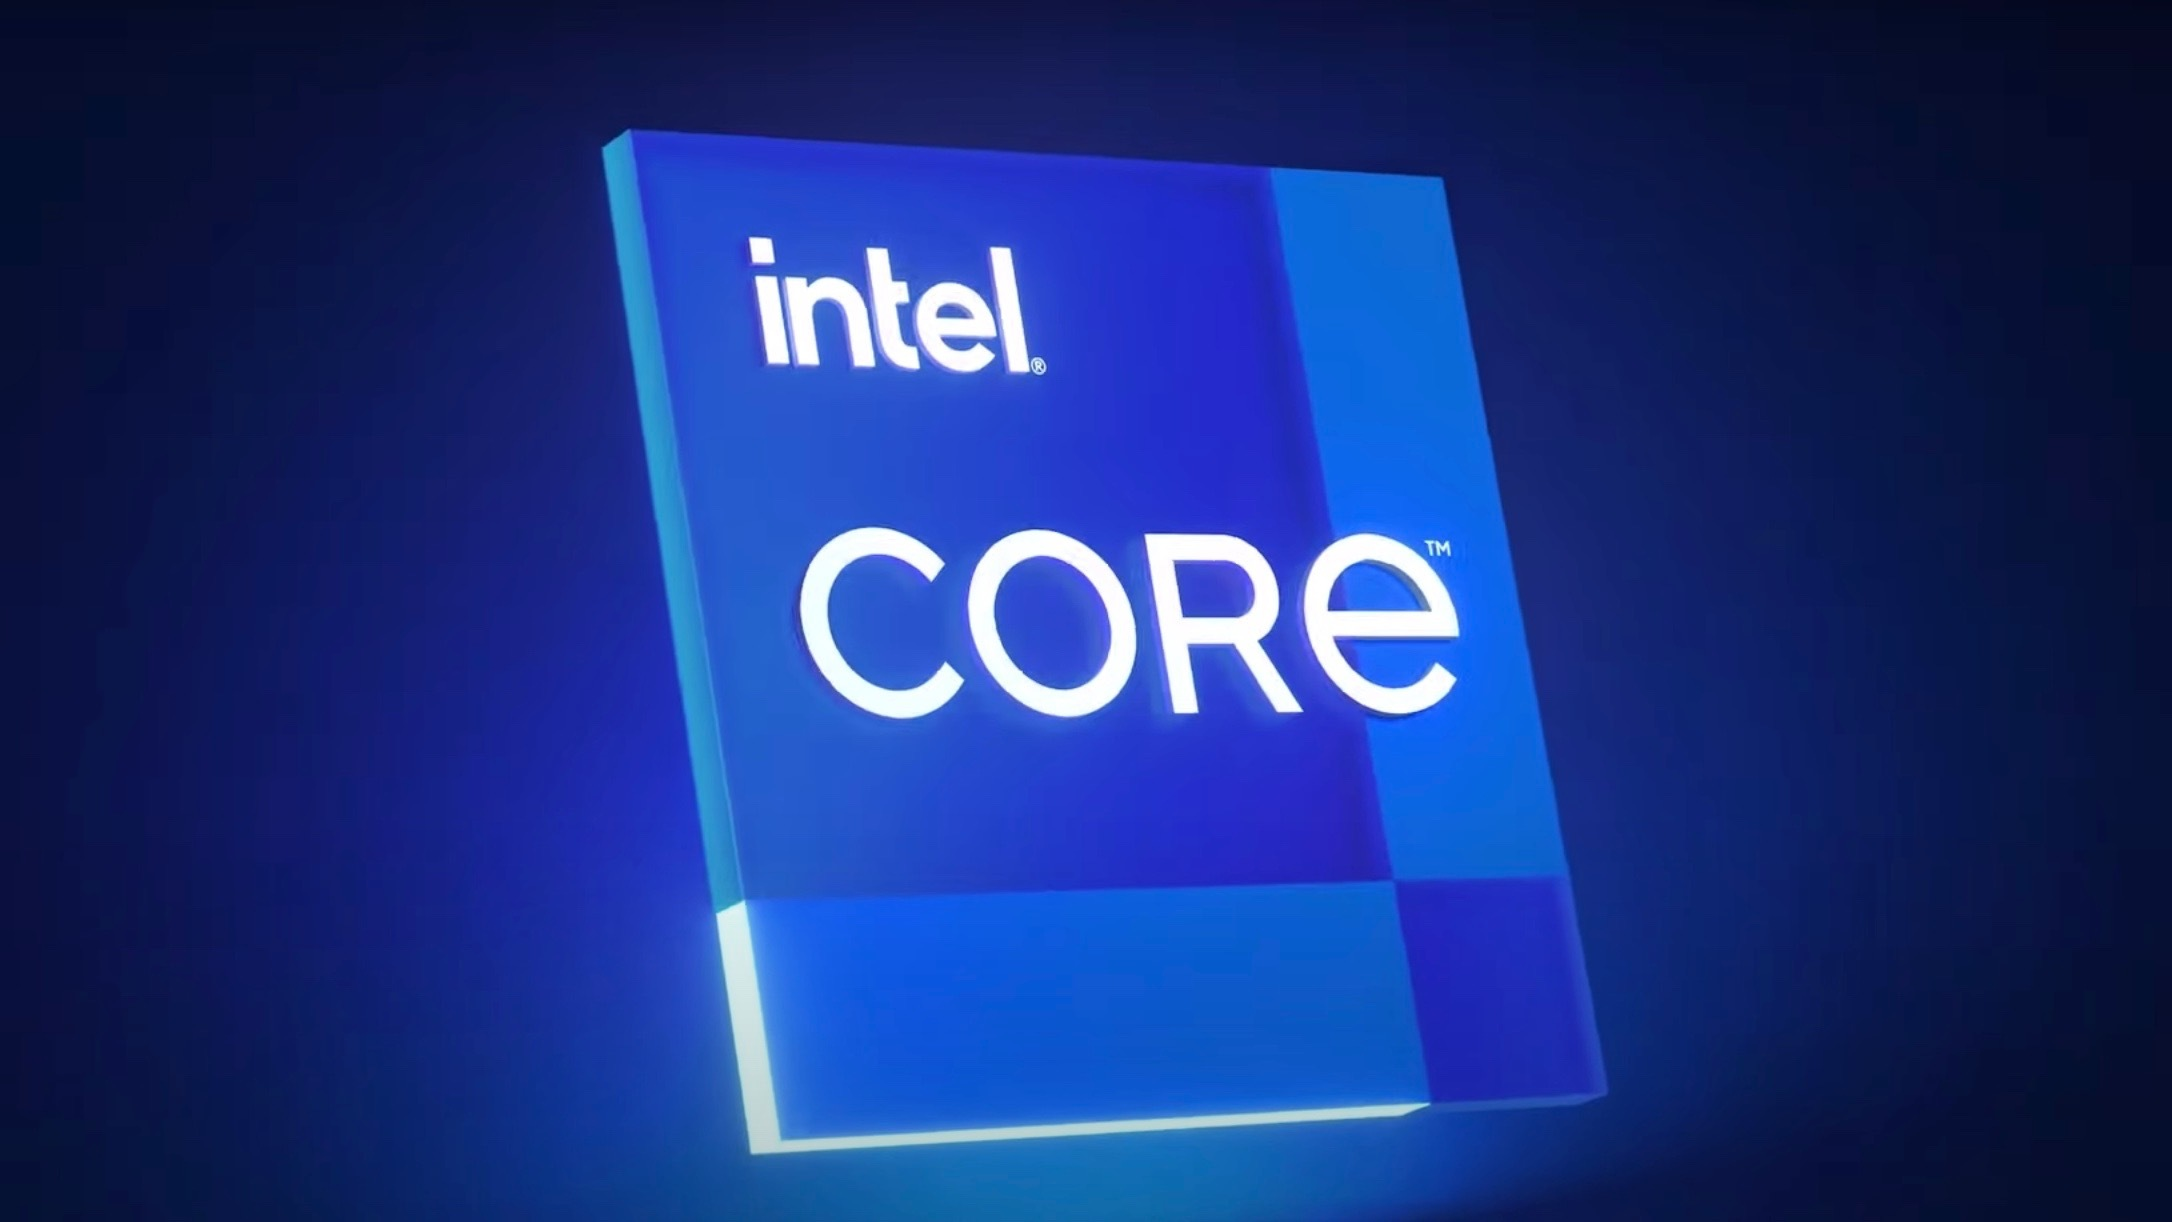 Intel Core i5-11400 Geekbench listings suggest it is 30 percent faster than its predecessor in single-core tasks thumbnail